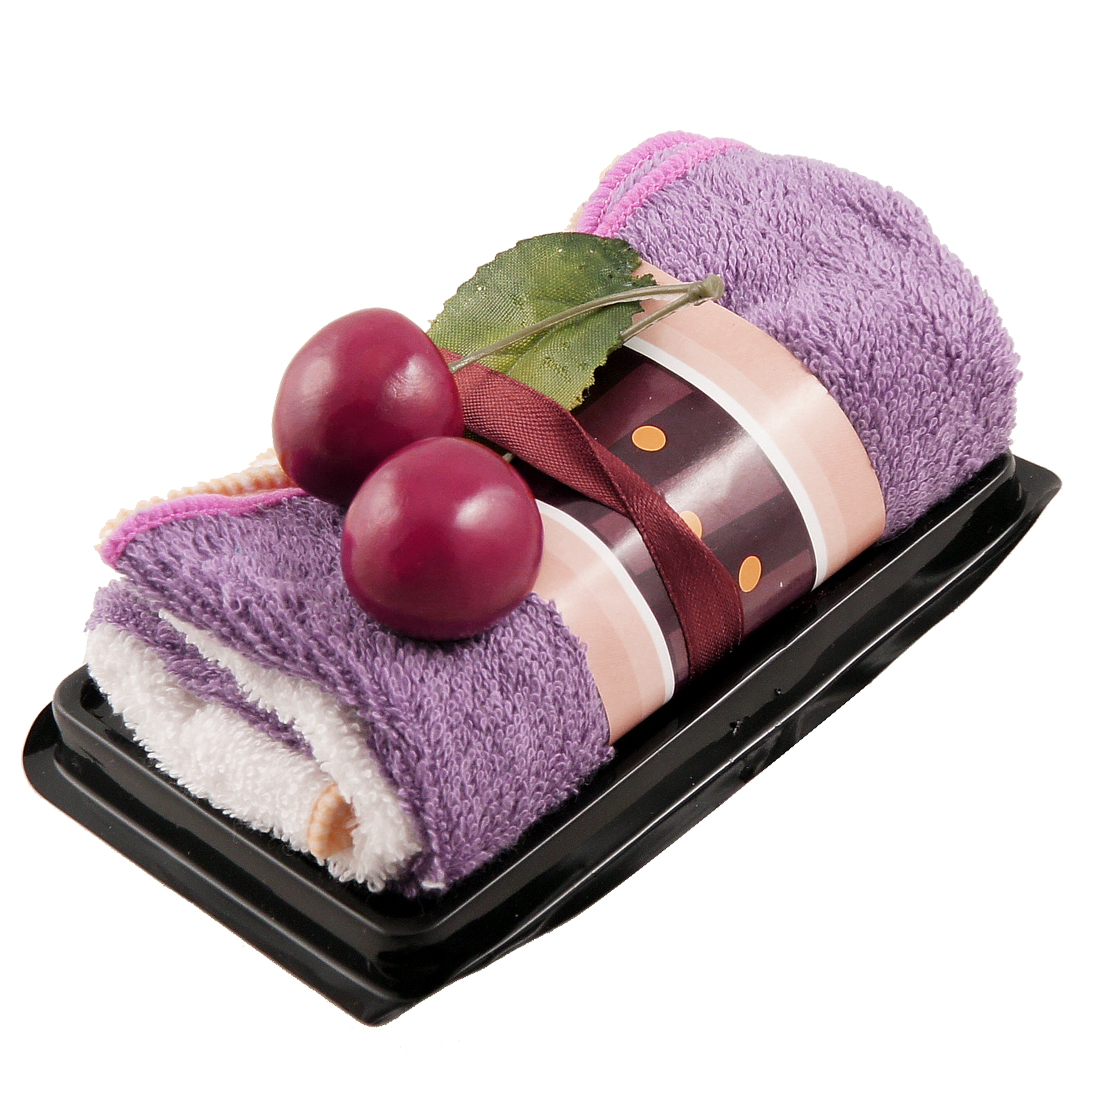 Purple White Swiss Roll Cake Cotton Towel Ornament 2 In 1